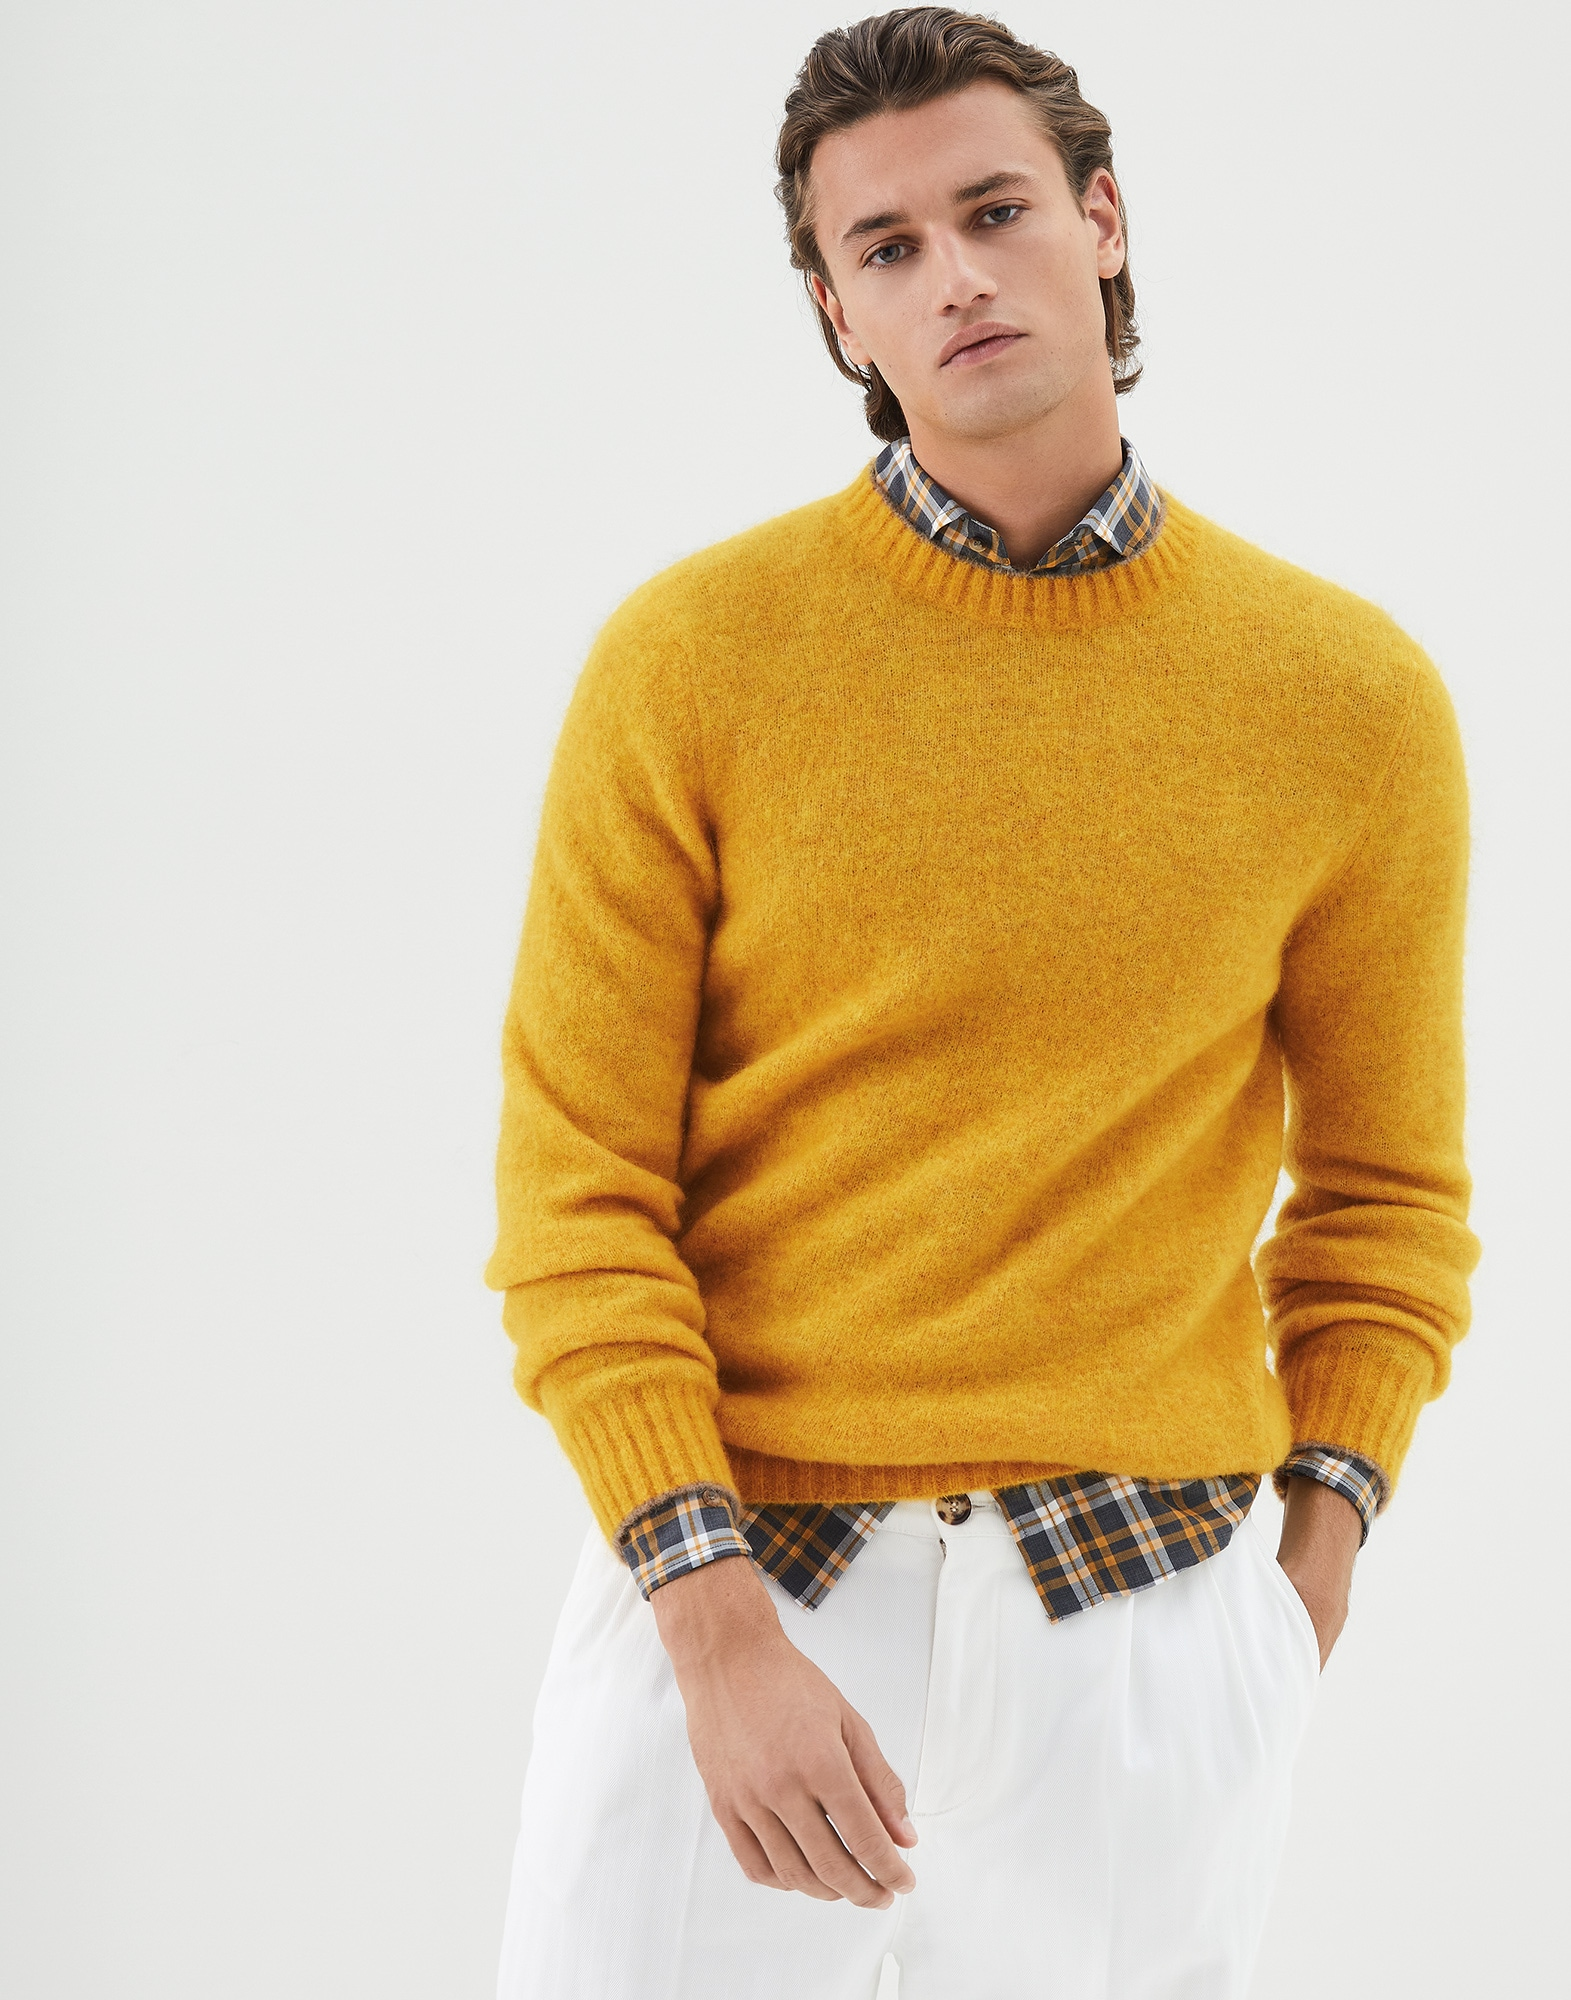 Crewneck Sweater Yellow Man 0 - Brunello Cucinelli